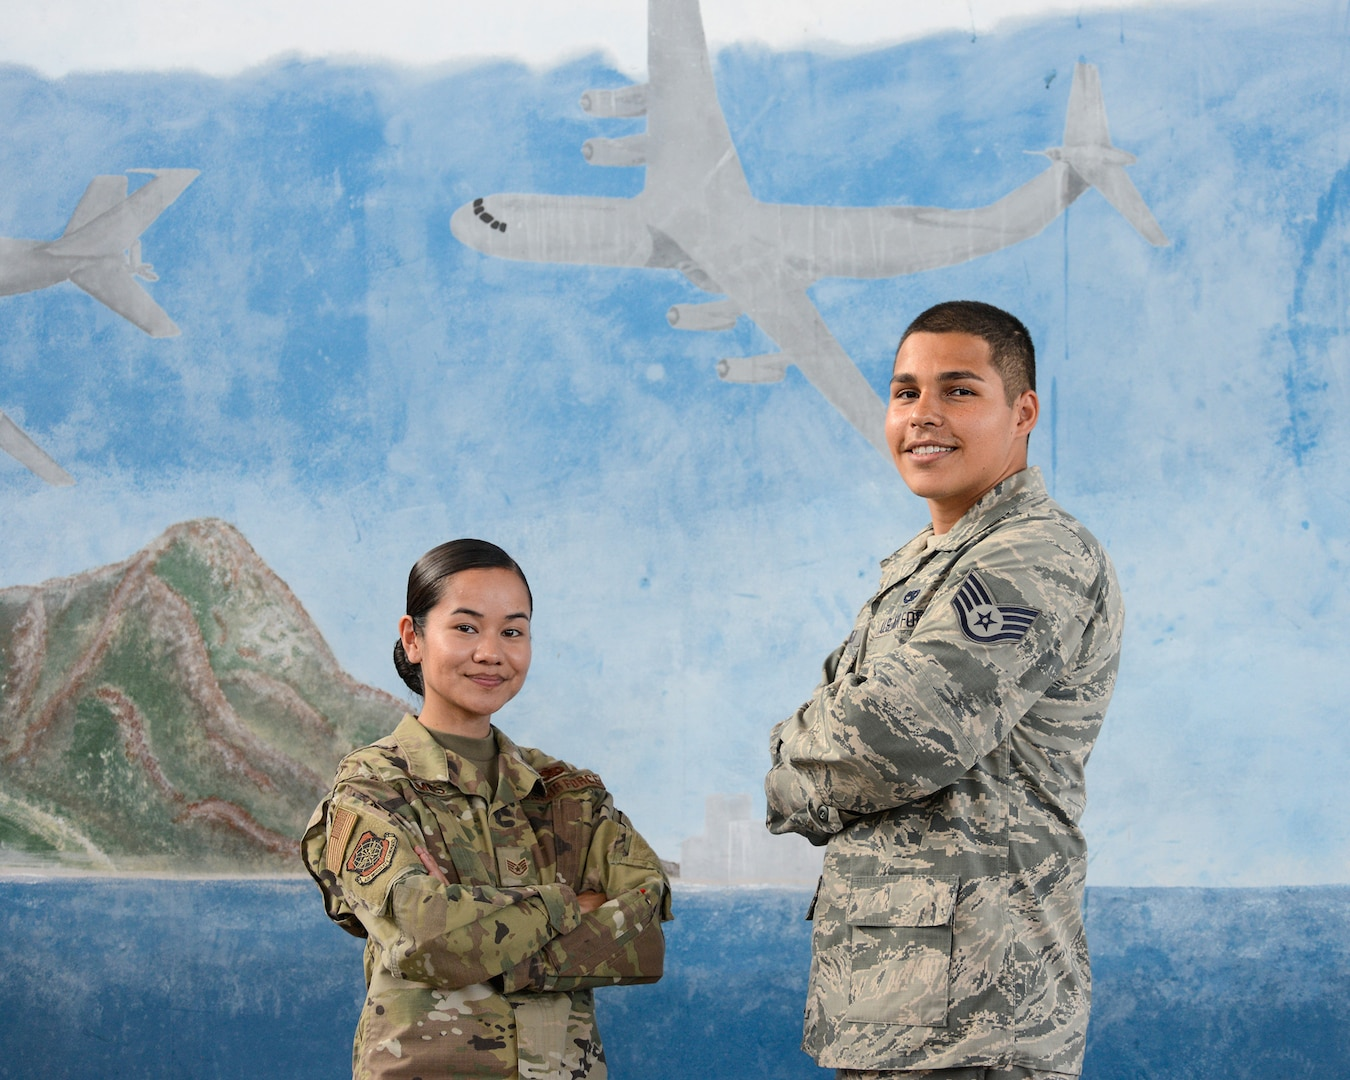 735th Air Mobility Squadron Maintainers Open the Gates to the Indo-Pacific